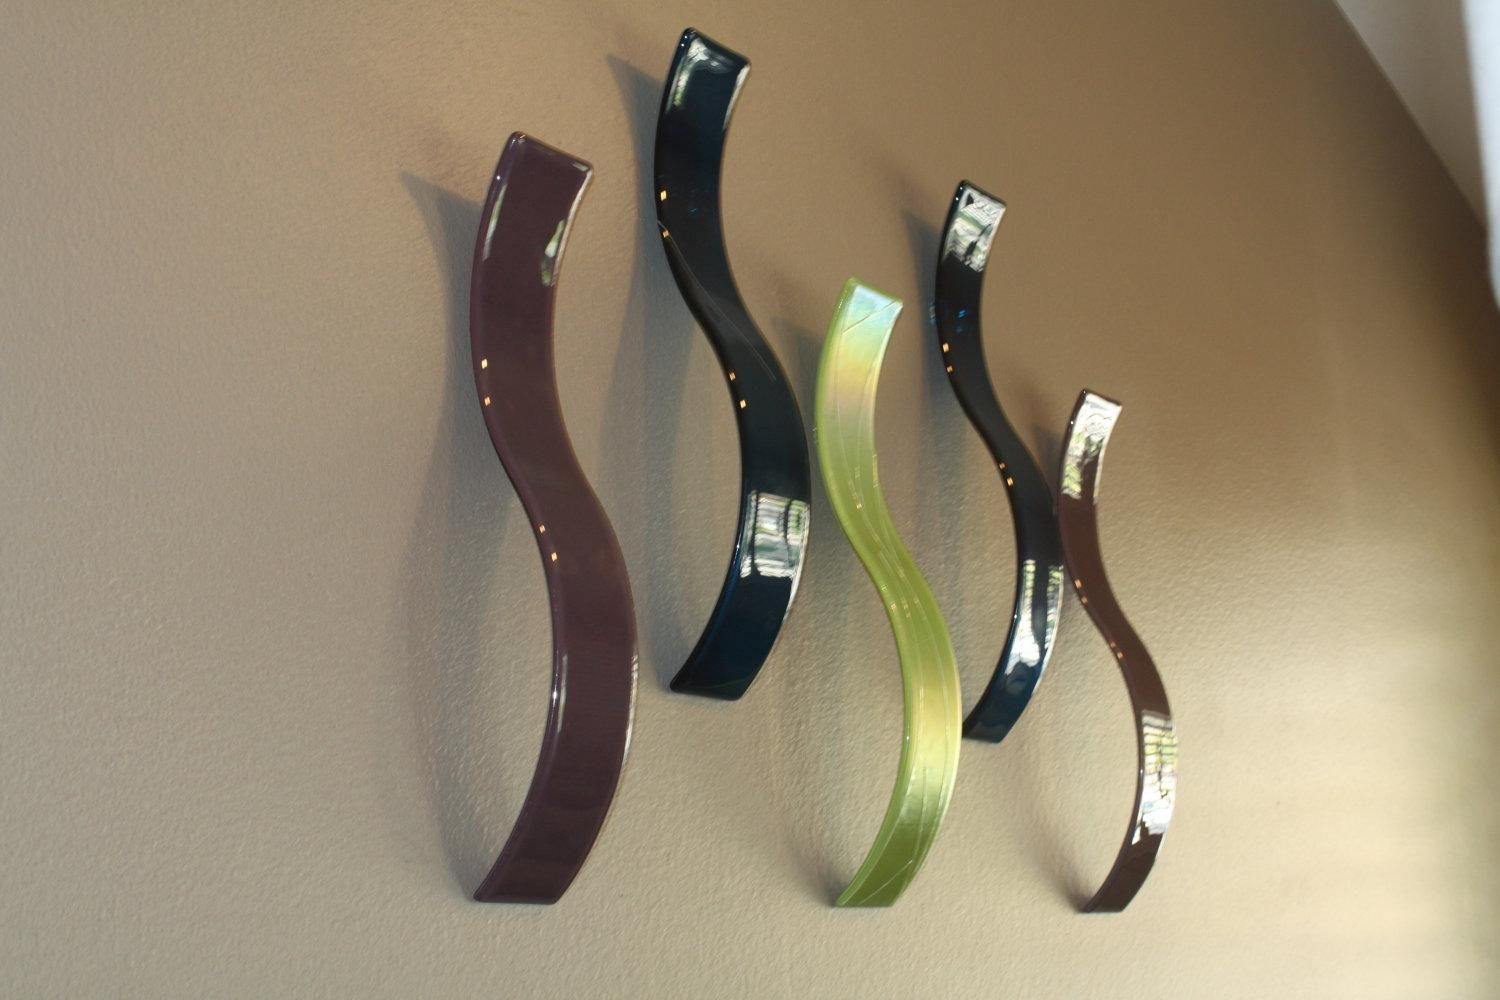 Custom Fused Glass Wall Art / Sculpture Waves Set Of 5 Regarding Large Fused Glass Wall Art (View 19 of 20)